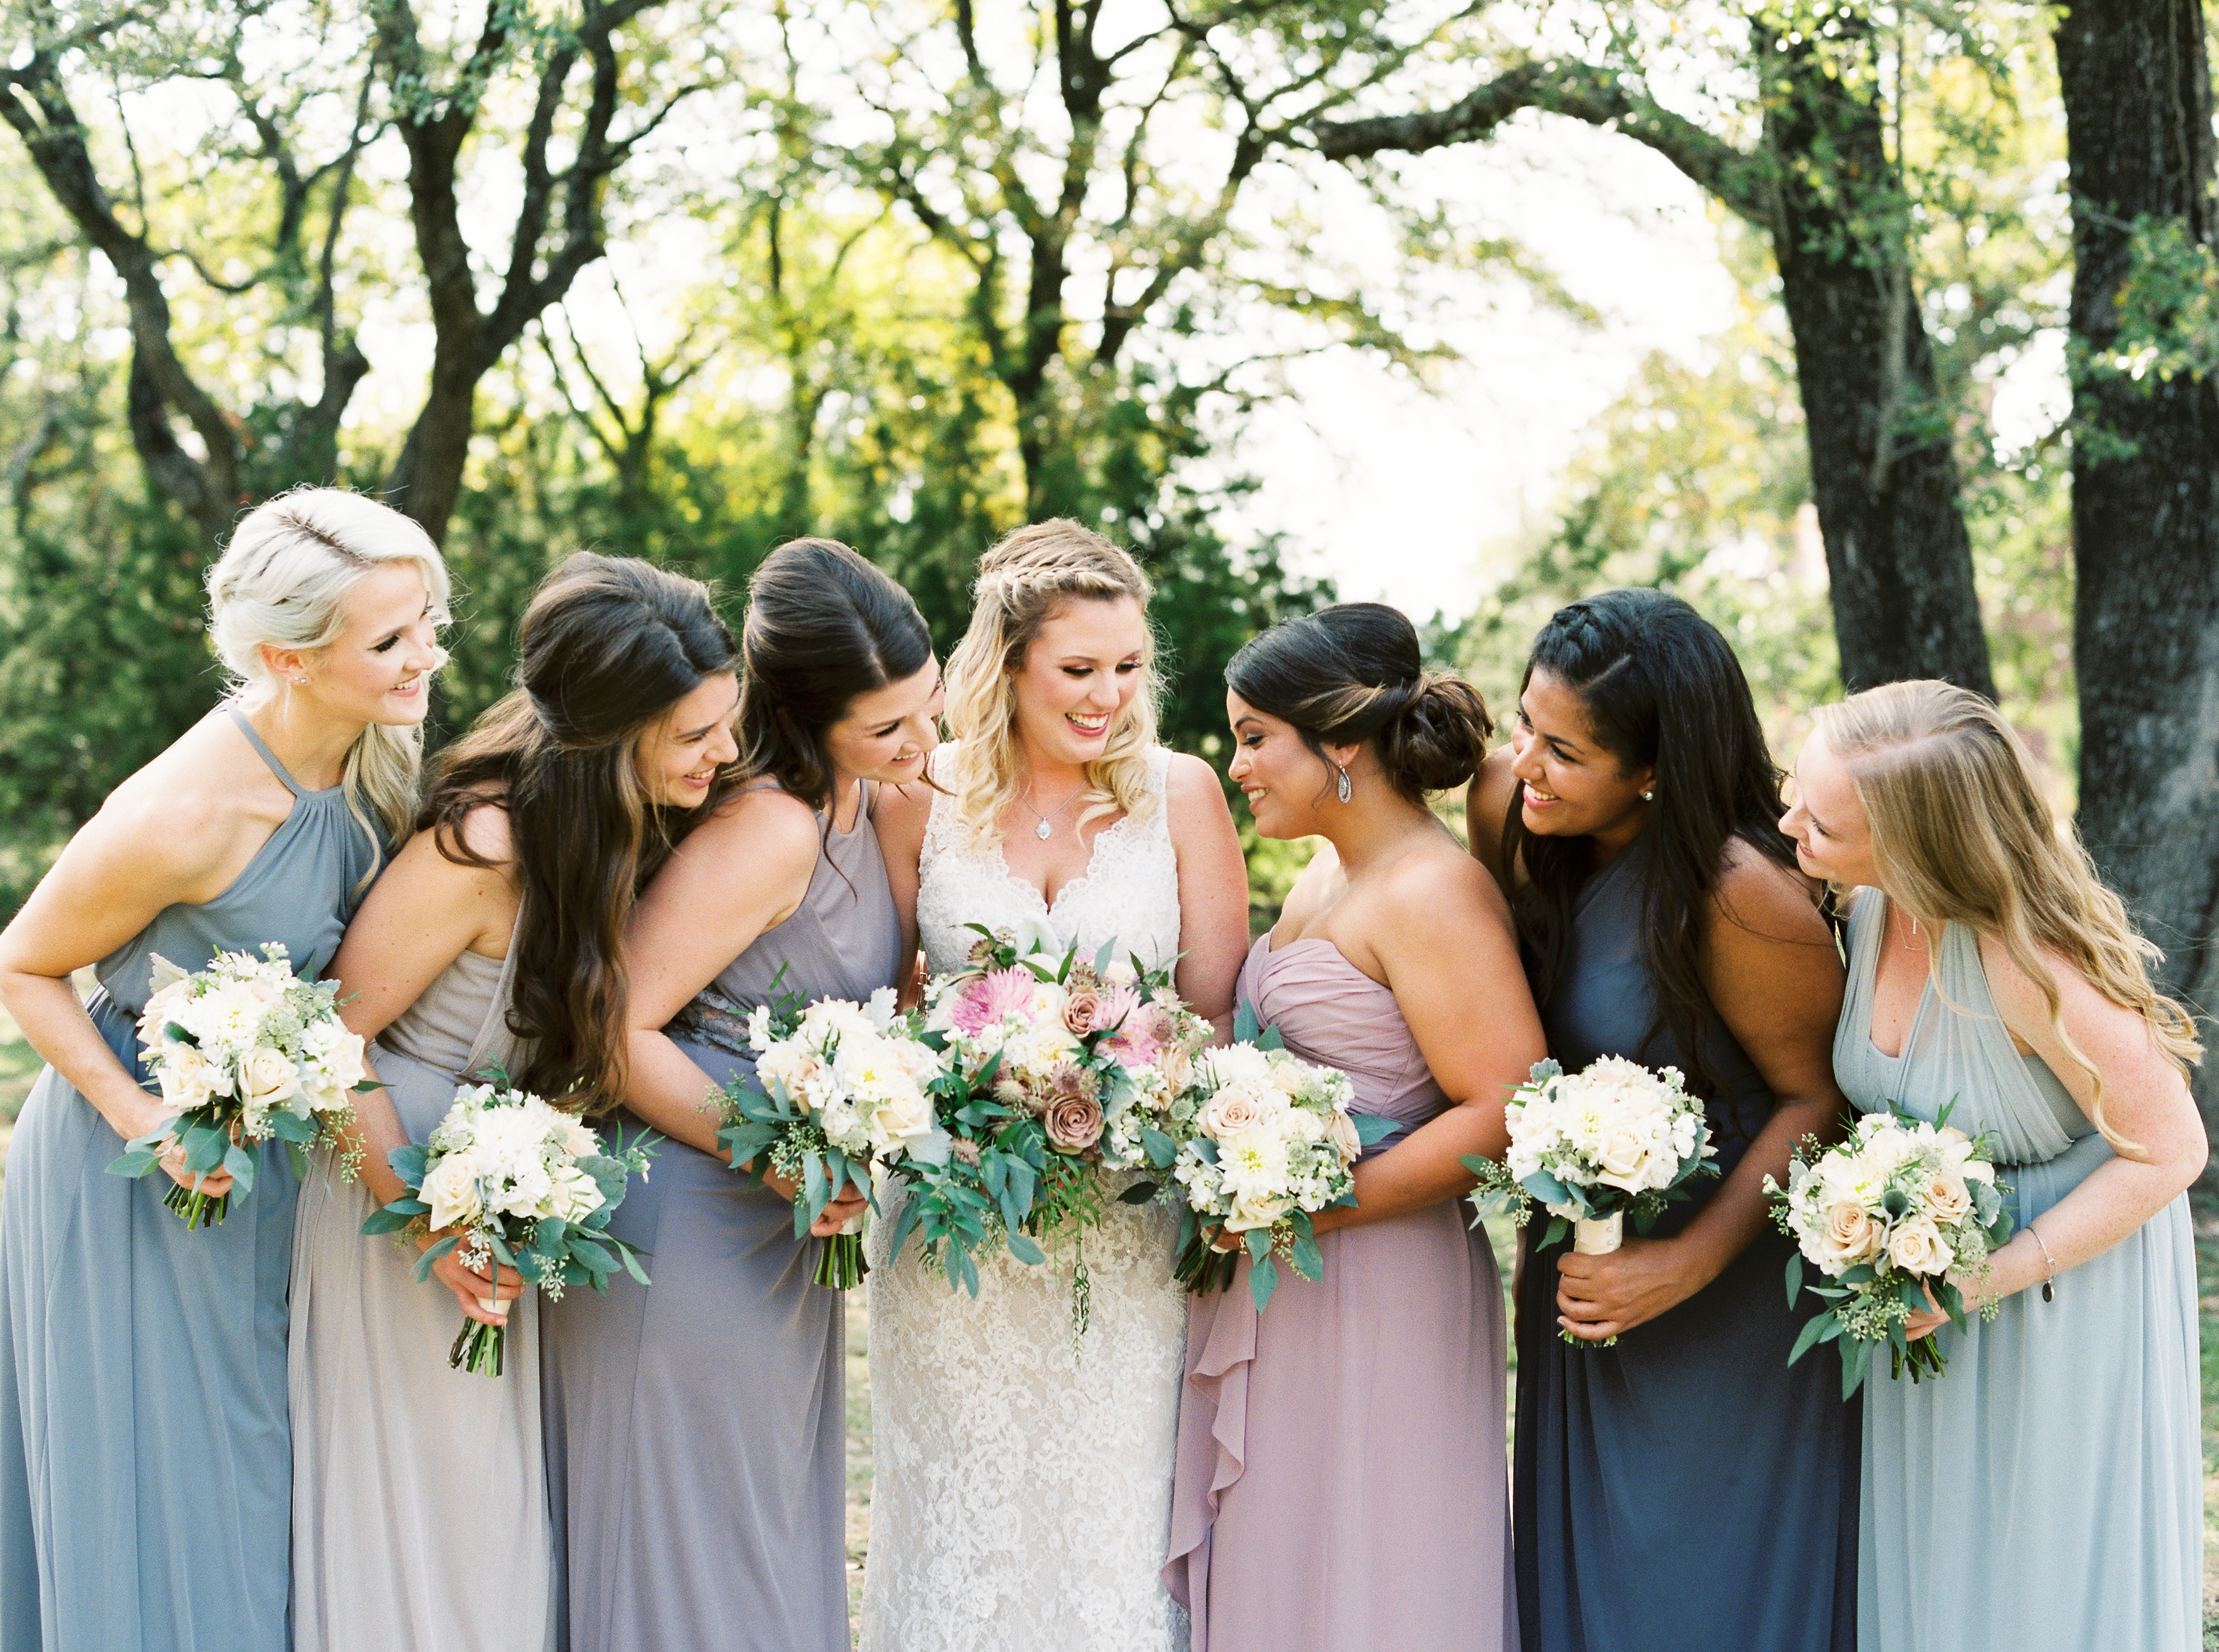 A bride and her six bridesmaids, wearing different shades of blue, stand smiling together on the grounds of Georgetown, Texas wedding venue, Kindred Oaks.